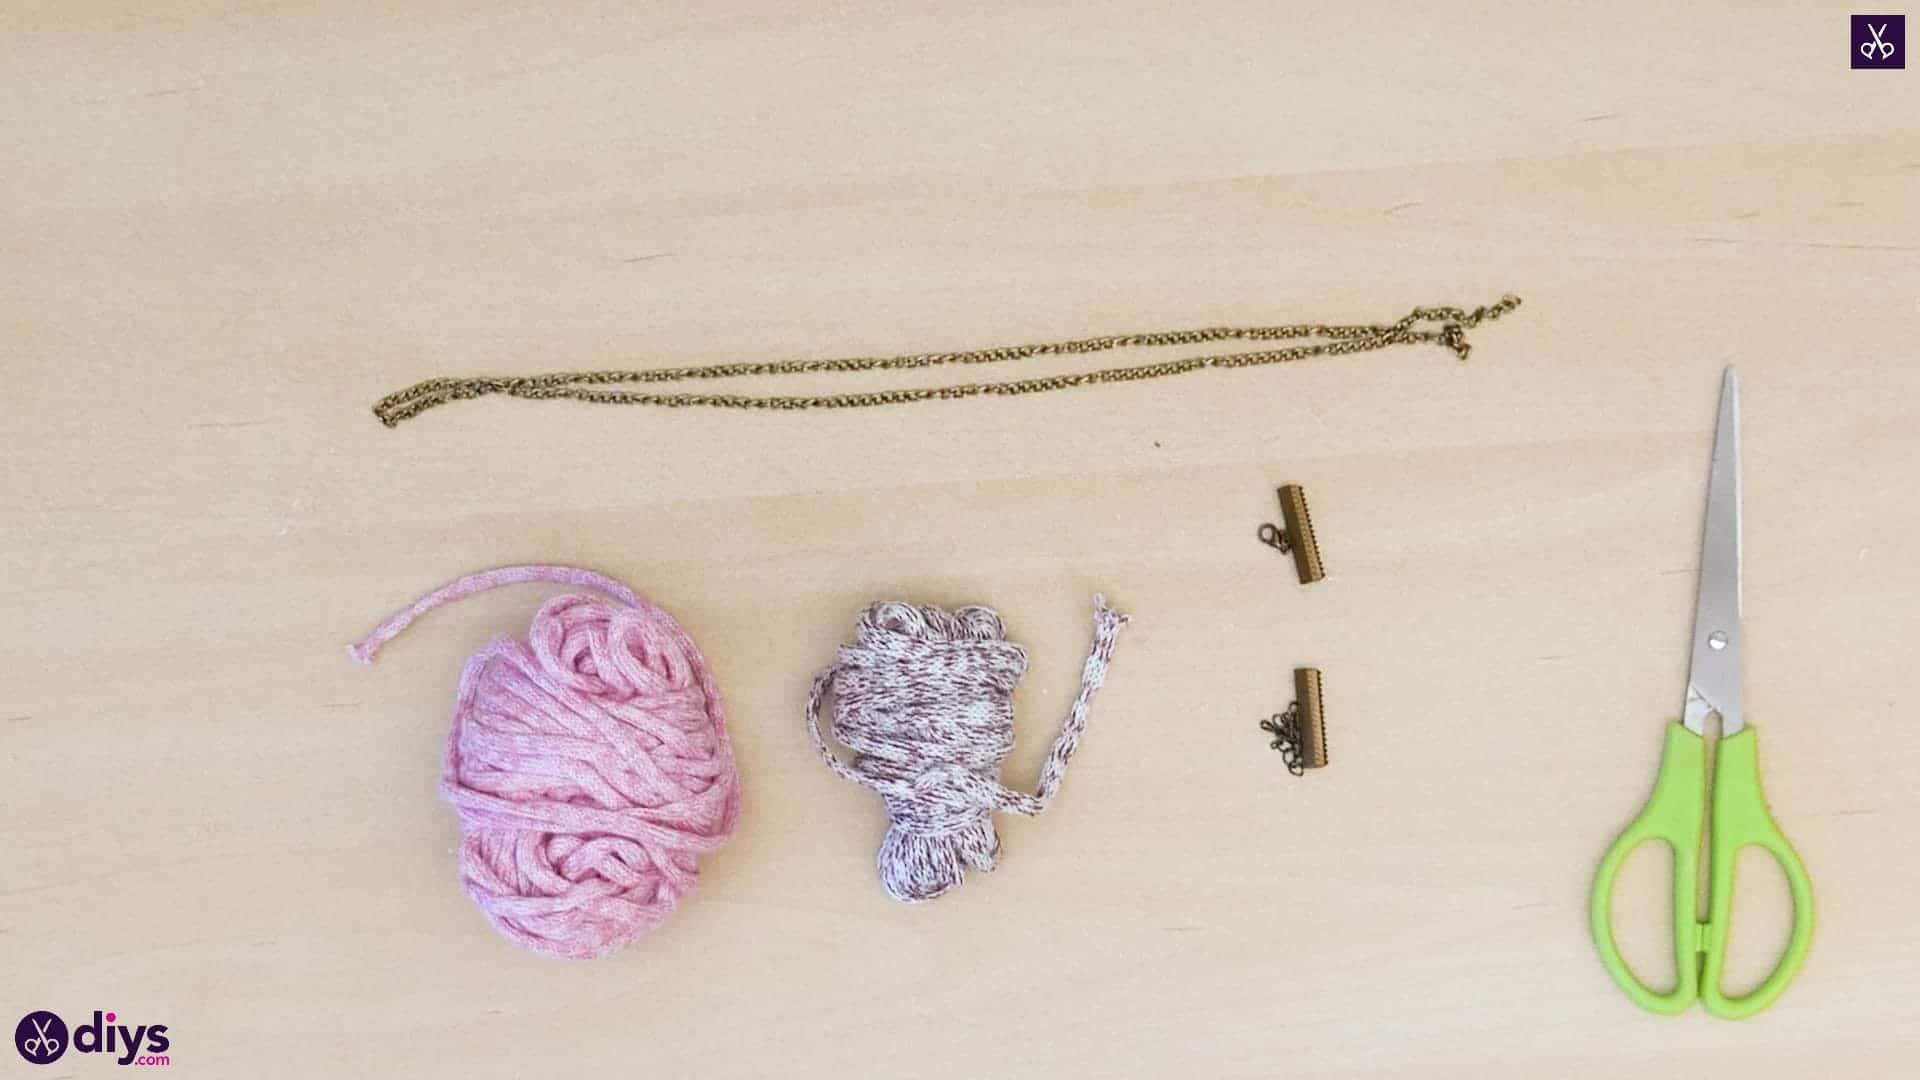 Yarn and chain bracelet materials